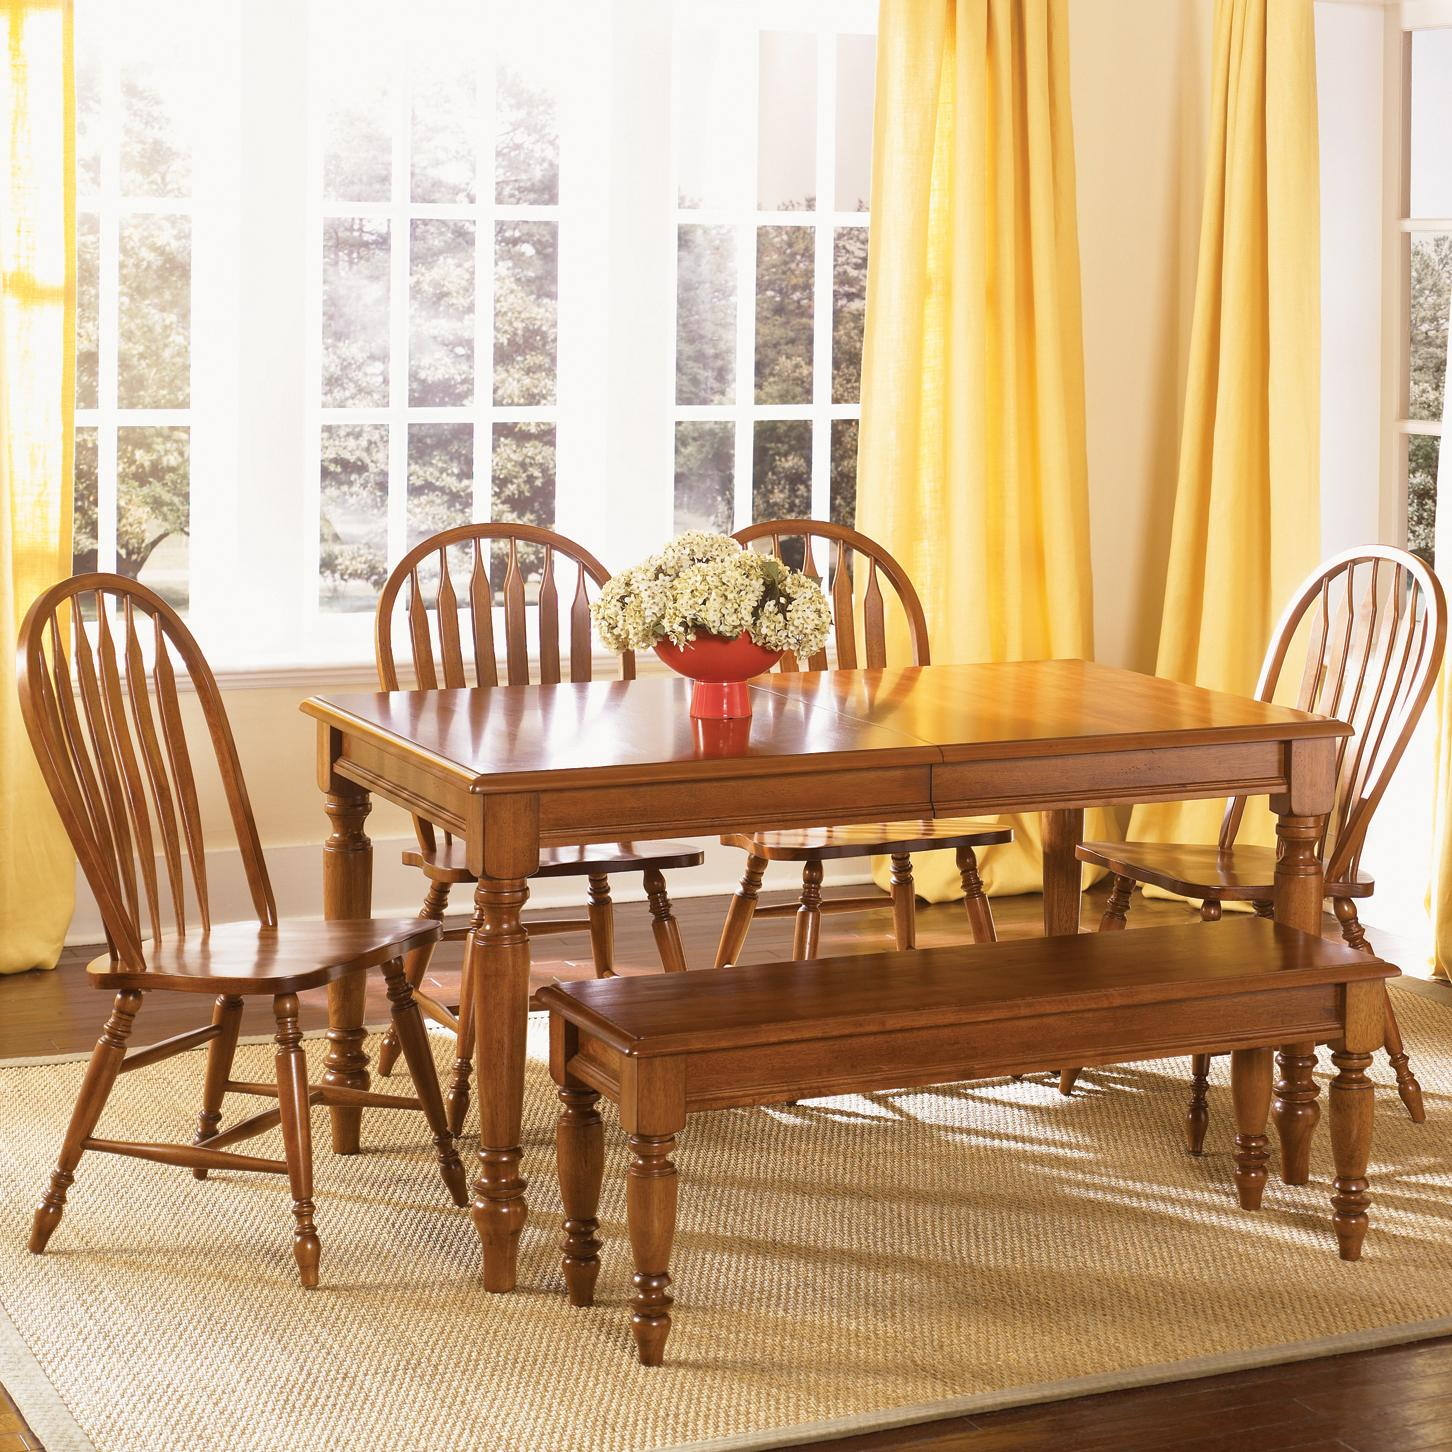 Liberty Furniture Low Country Six Piece Dining Set - Item Number: 76-T3876+4xC1000S+C9000B